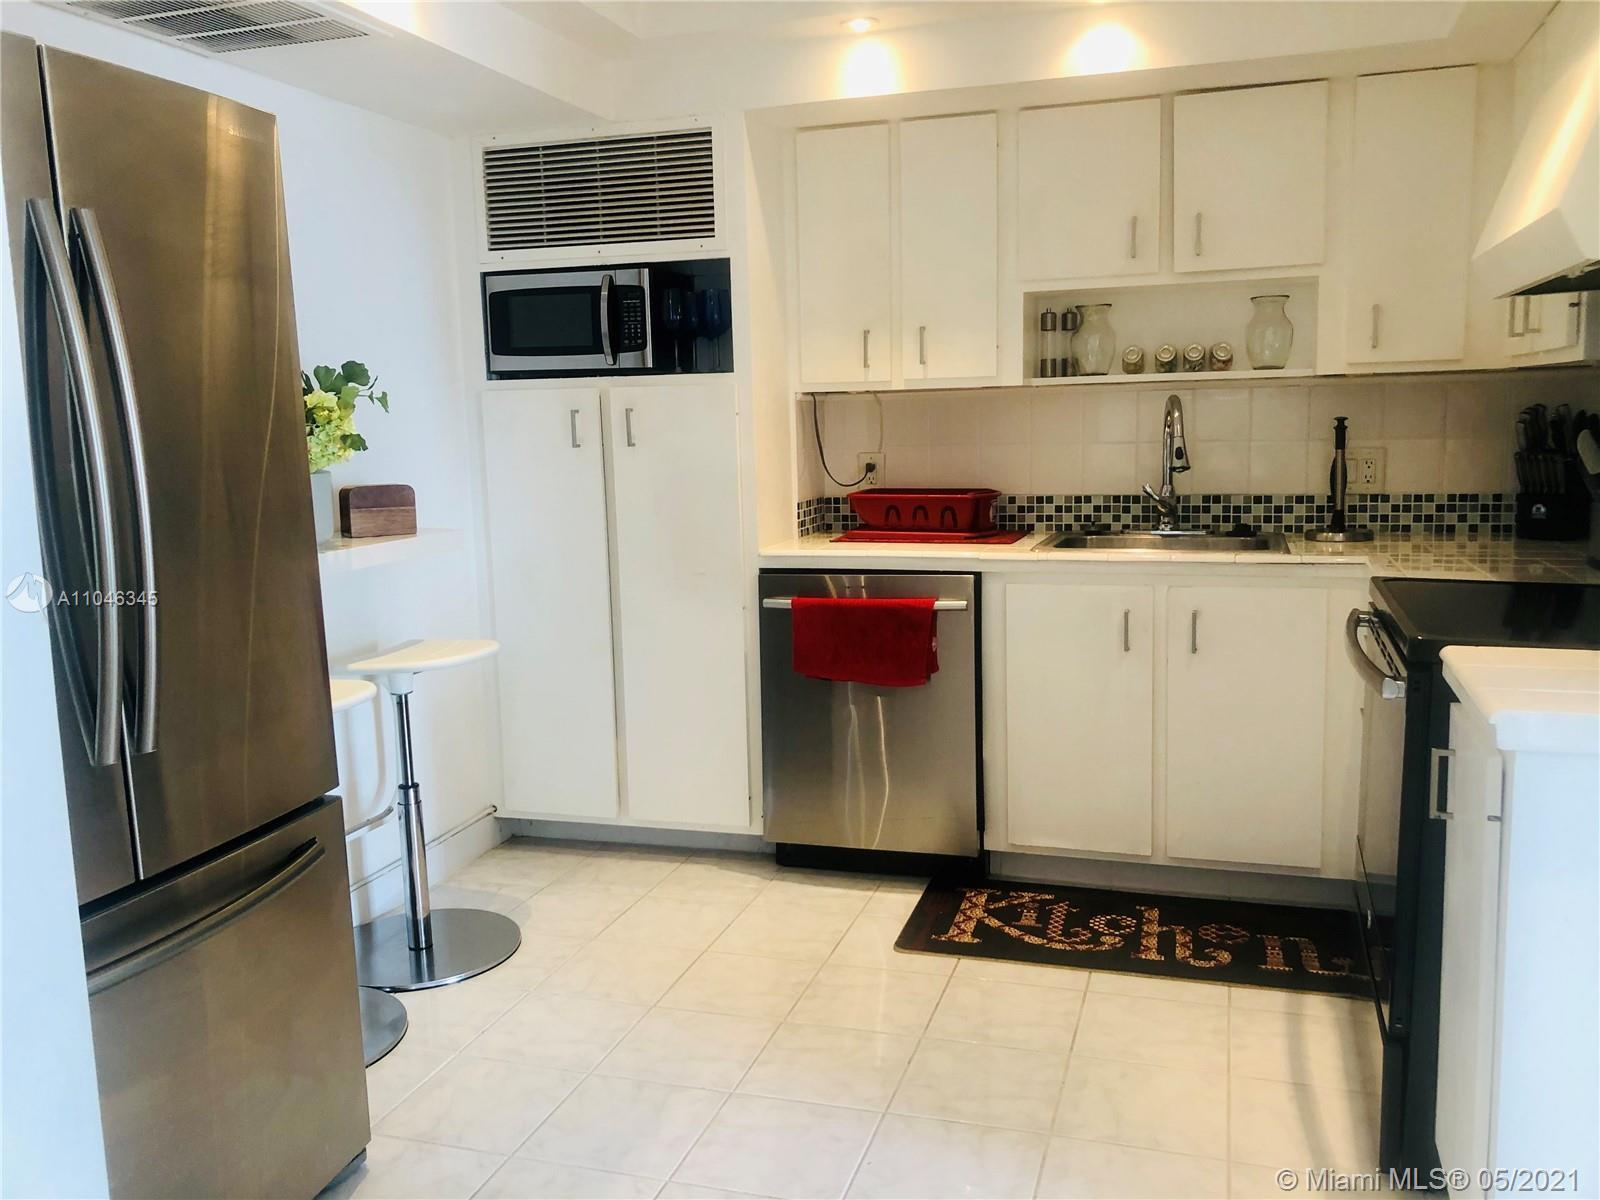 Renovated 2BD/2BA. The best water and city views from the 2 bedrooms and balcony... Beautifully upgr